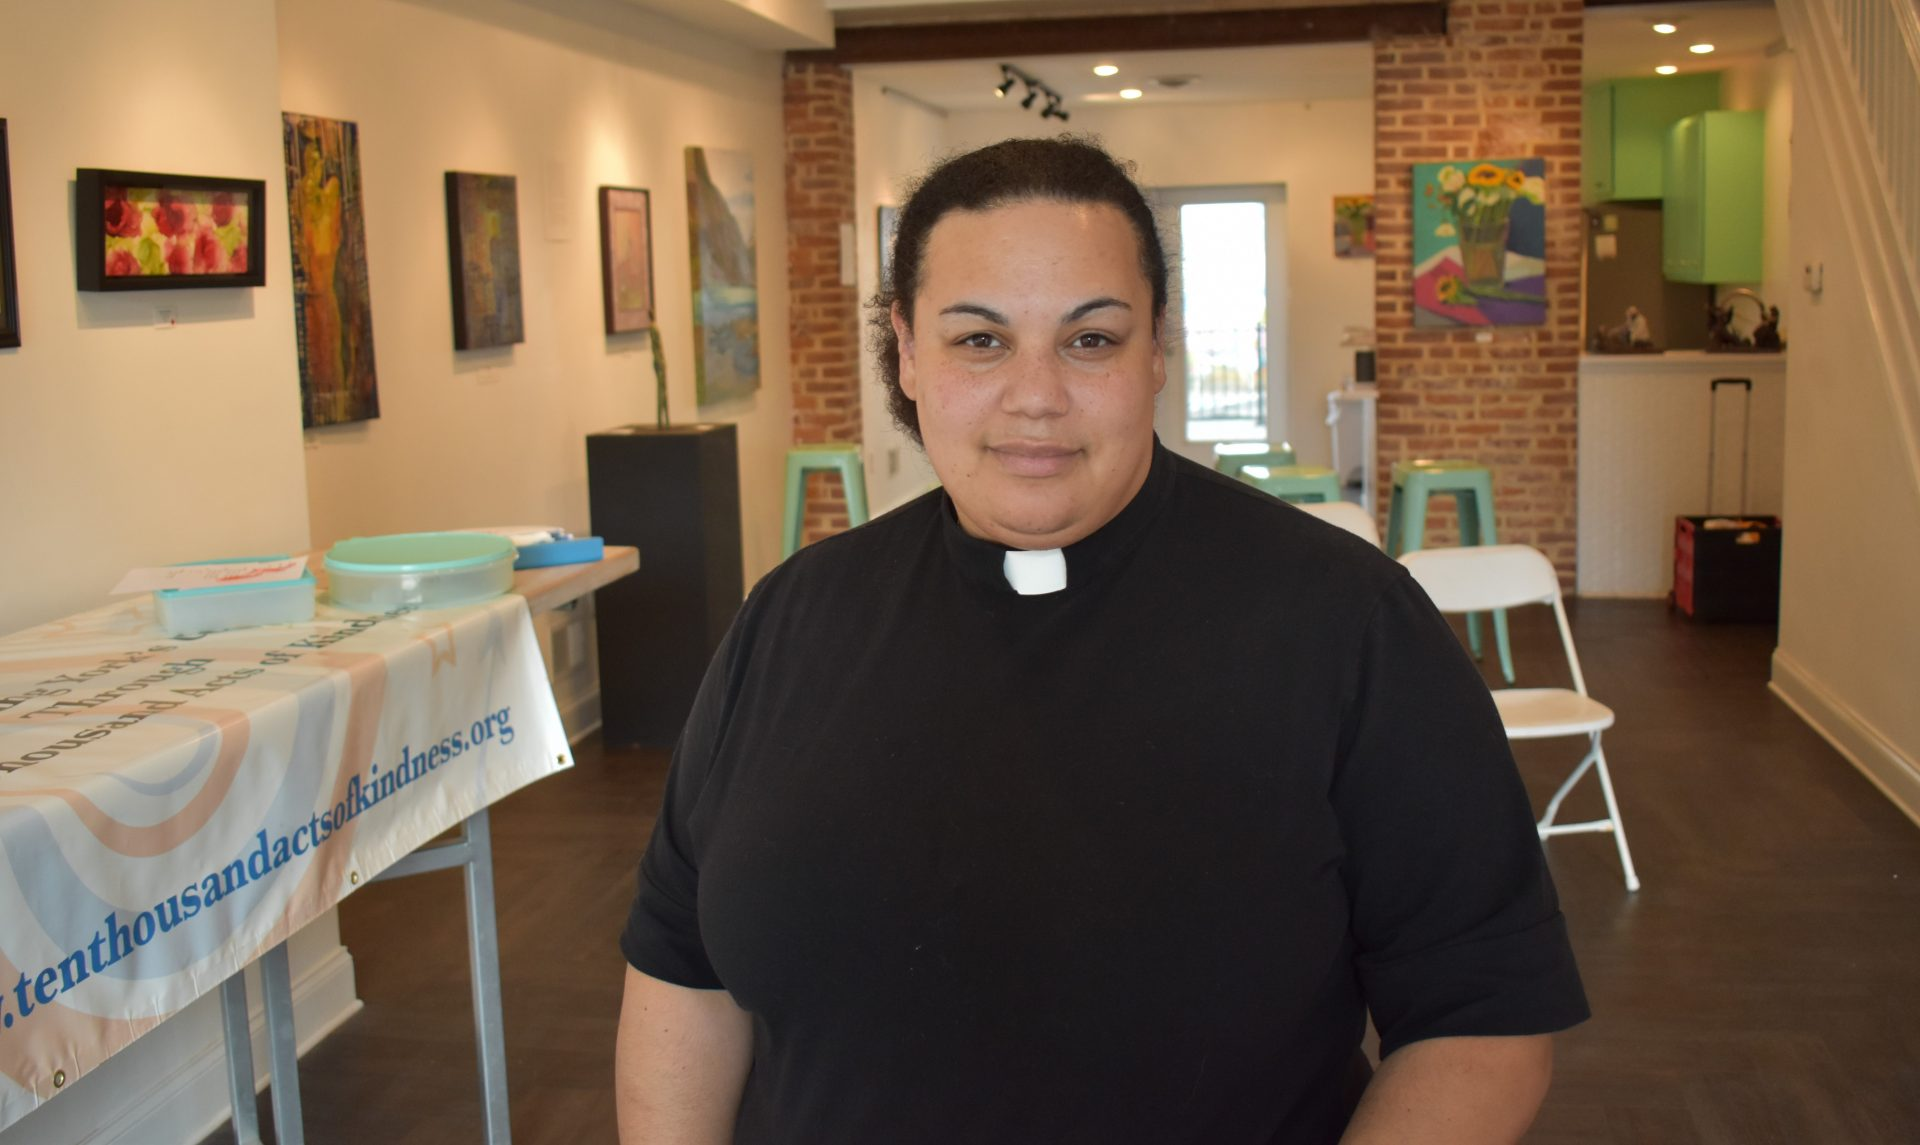 Carla Christopher, vicar at Union Lutheran Church, is seen on June 12, 2019, at The Parliament Arts Organization in York.